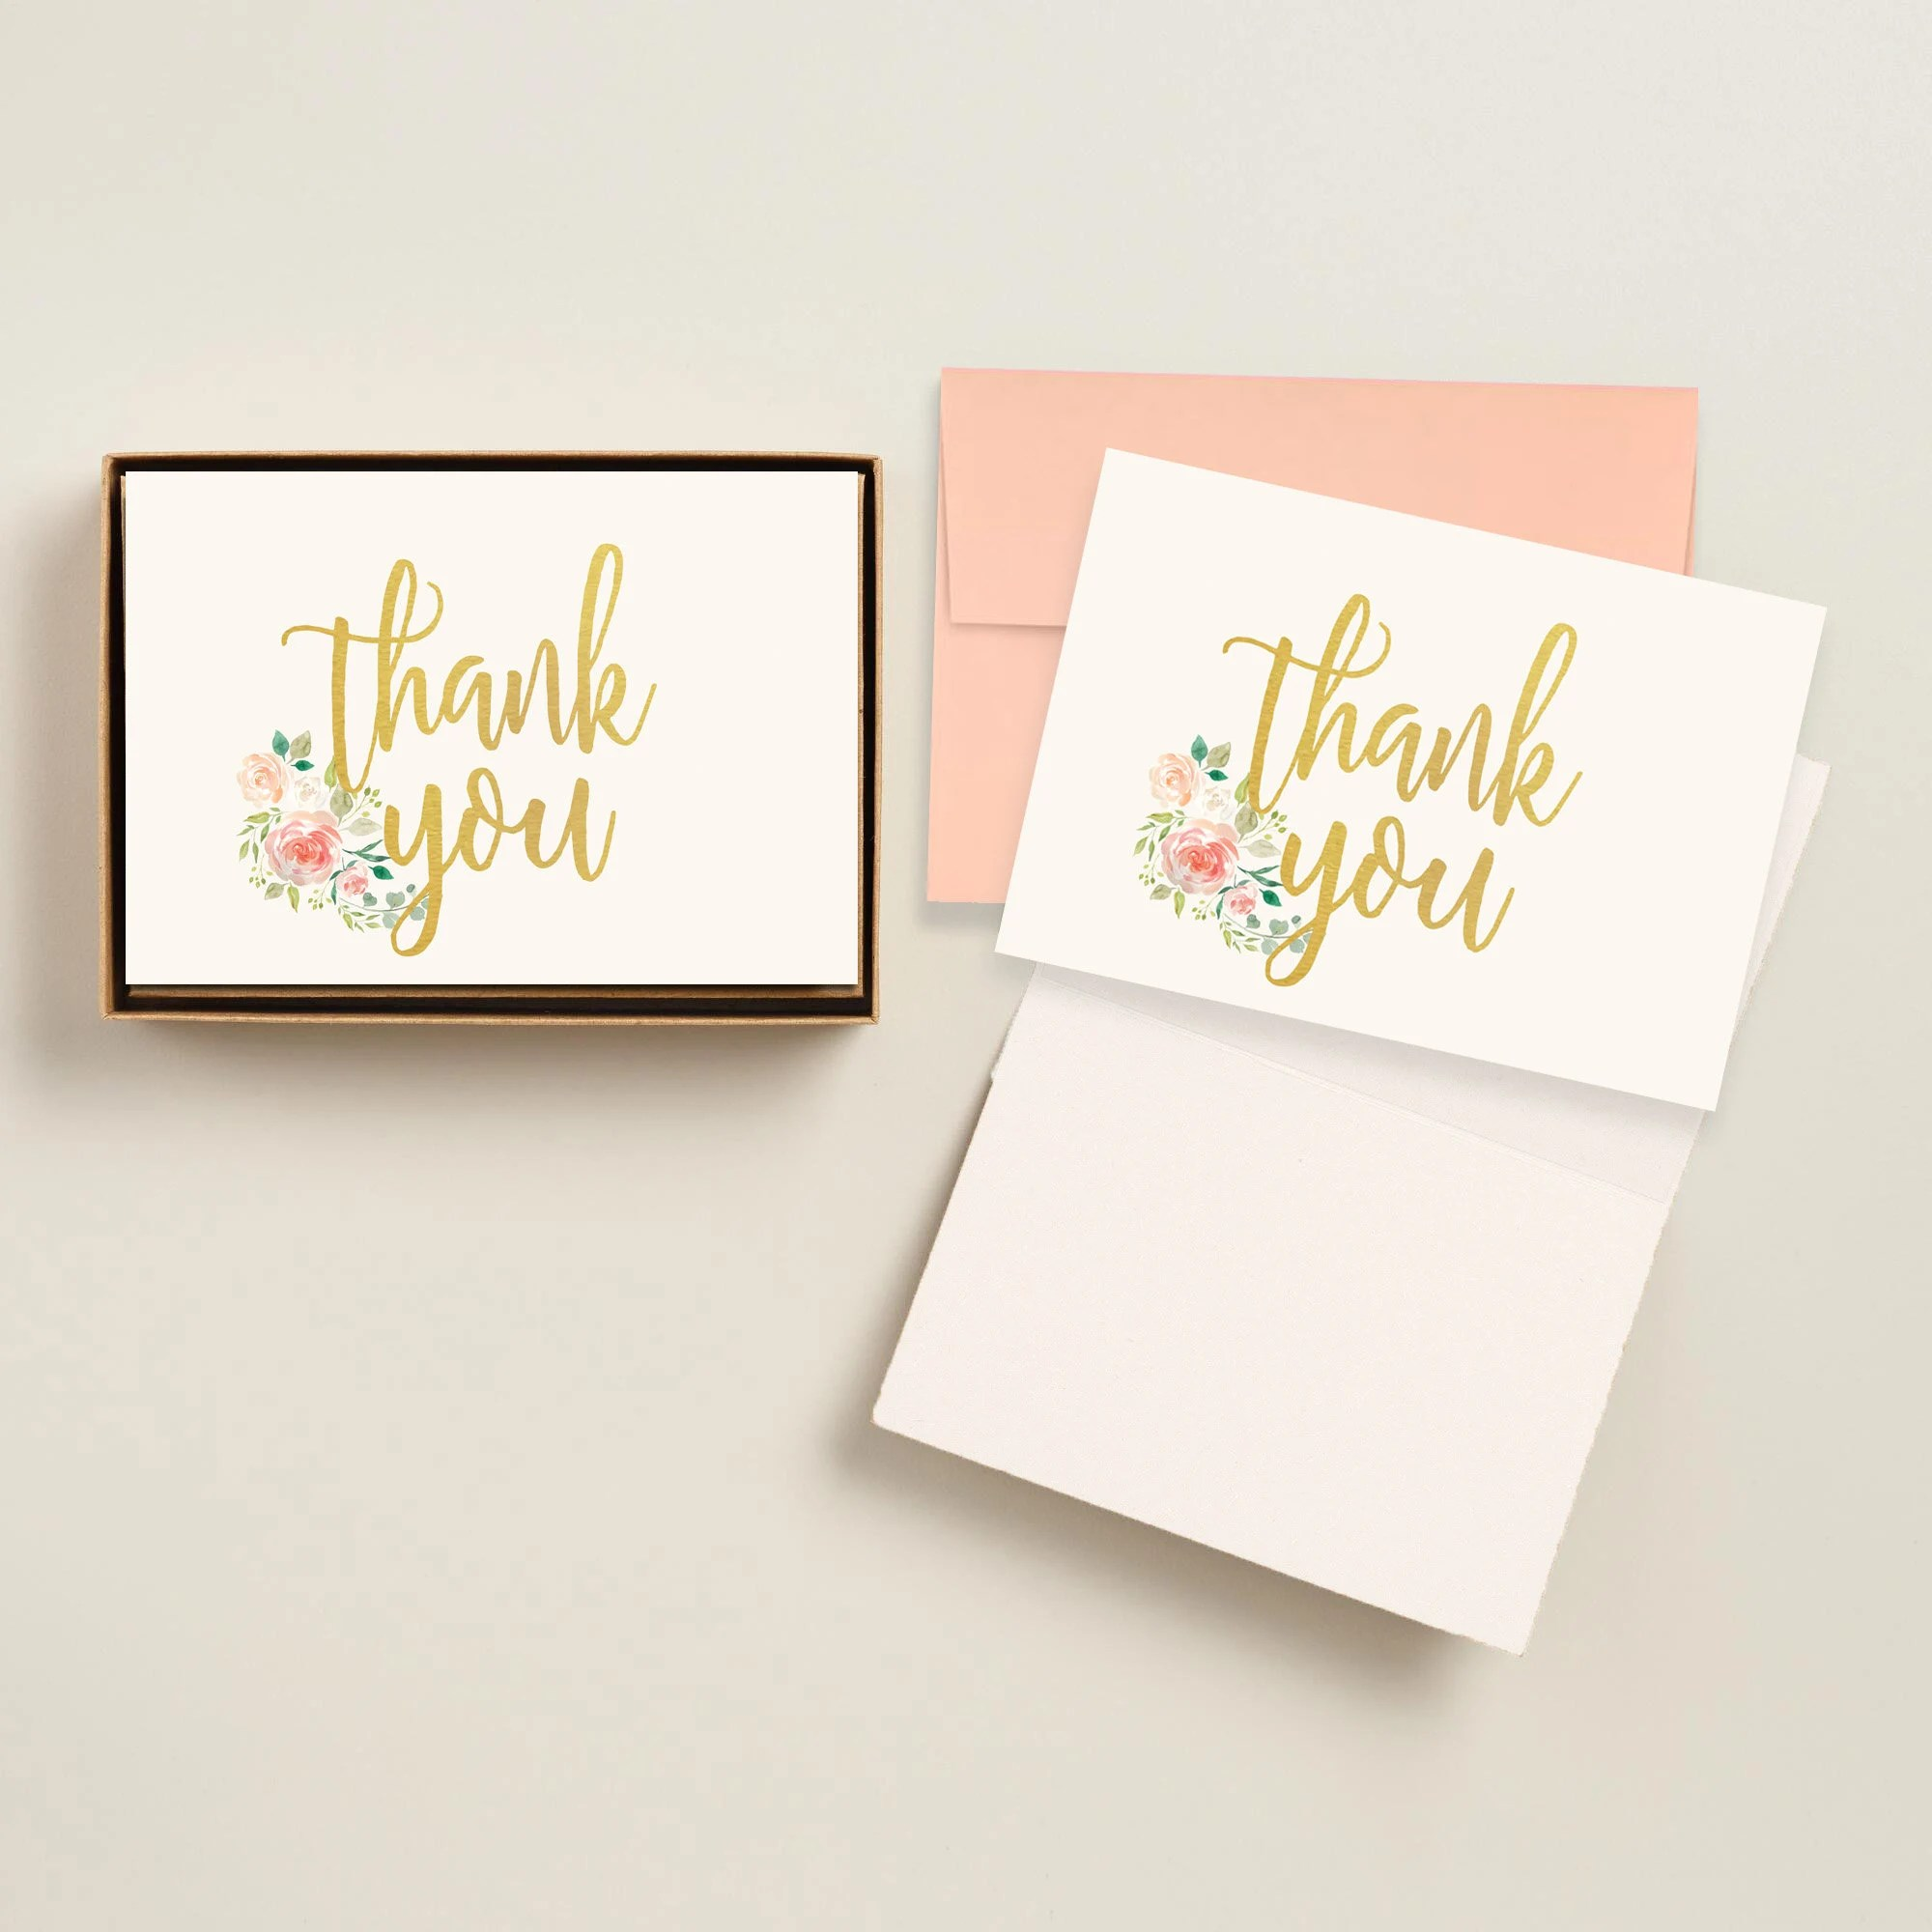 Printable Thank You Cards, Printed Personalized Engagement Thank You